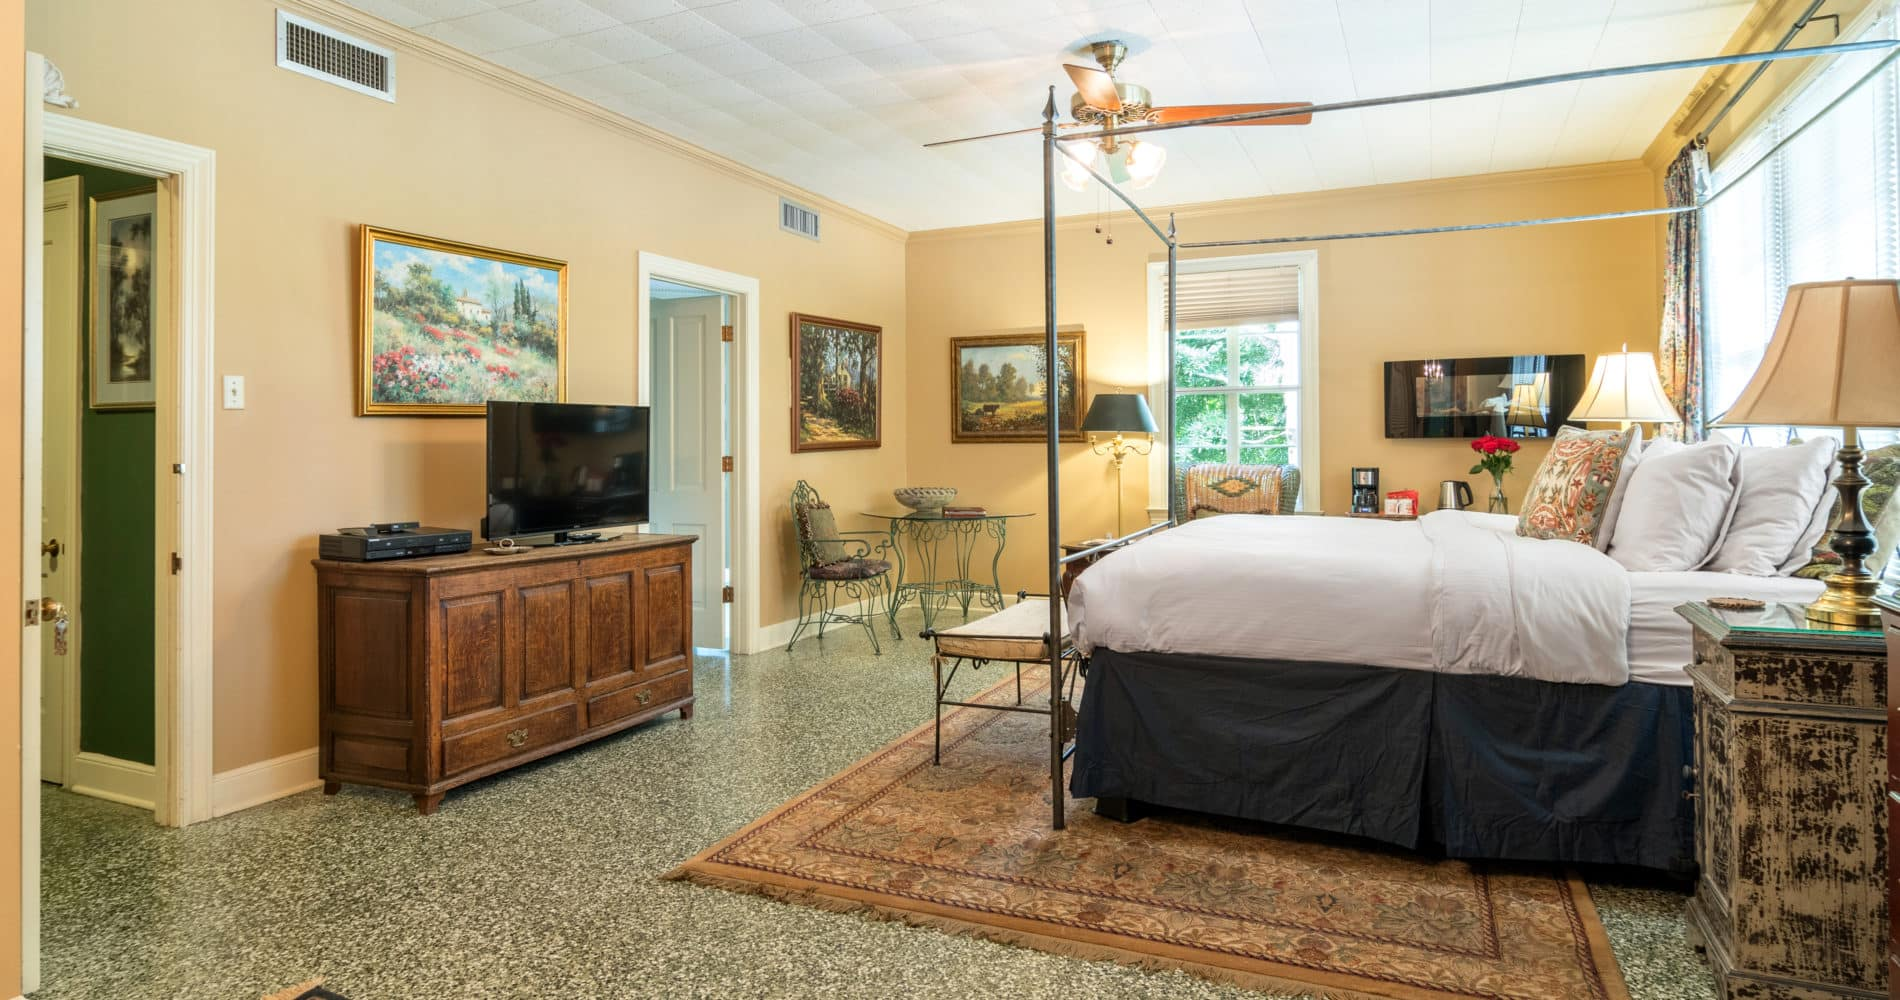 Escape room with 4-poster bed, furniture, paintings on walls